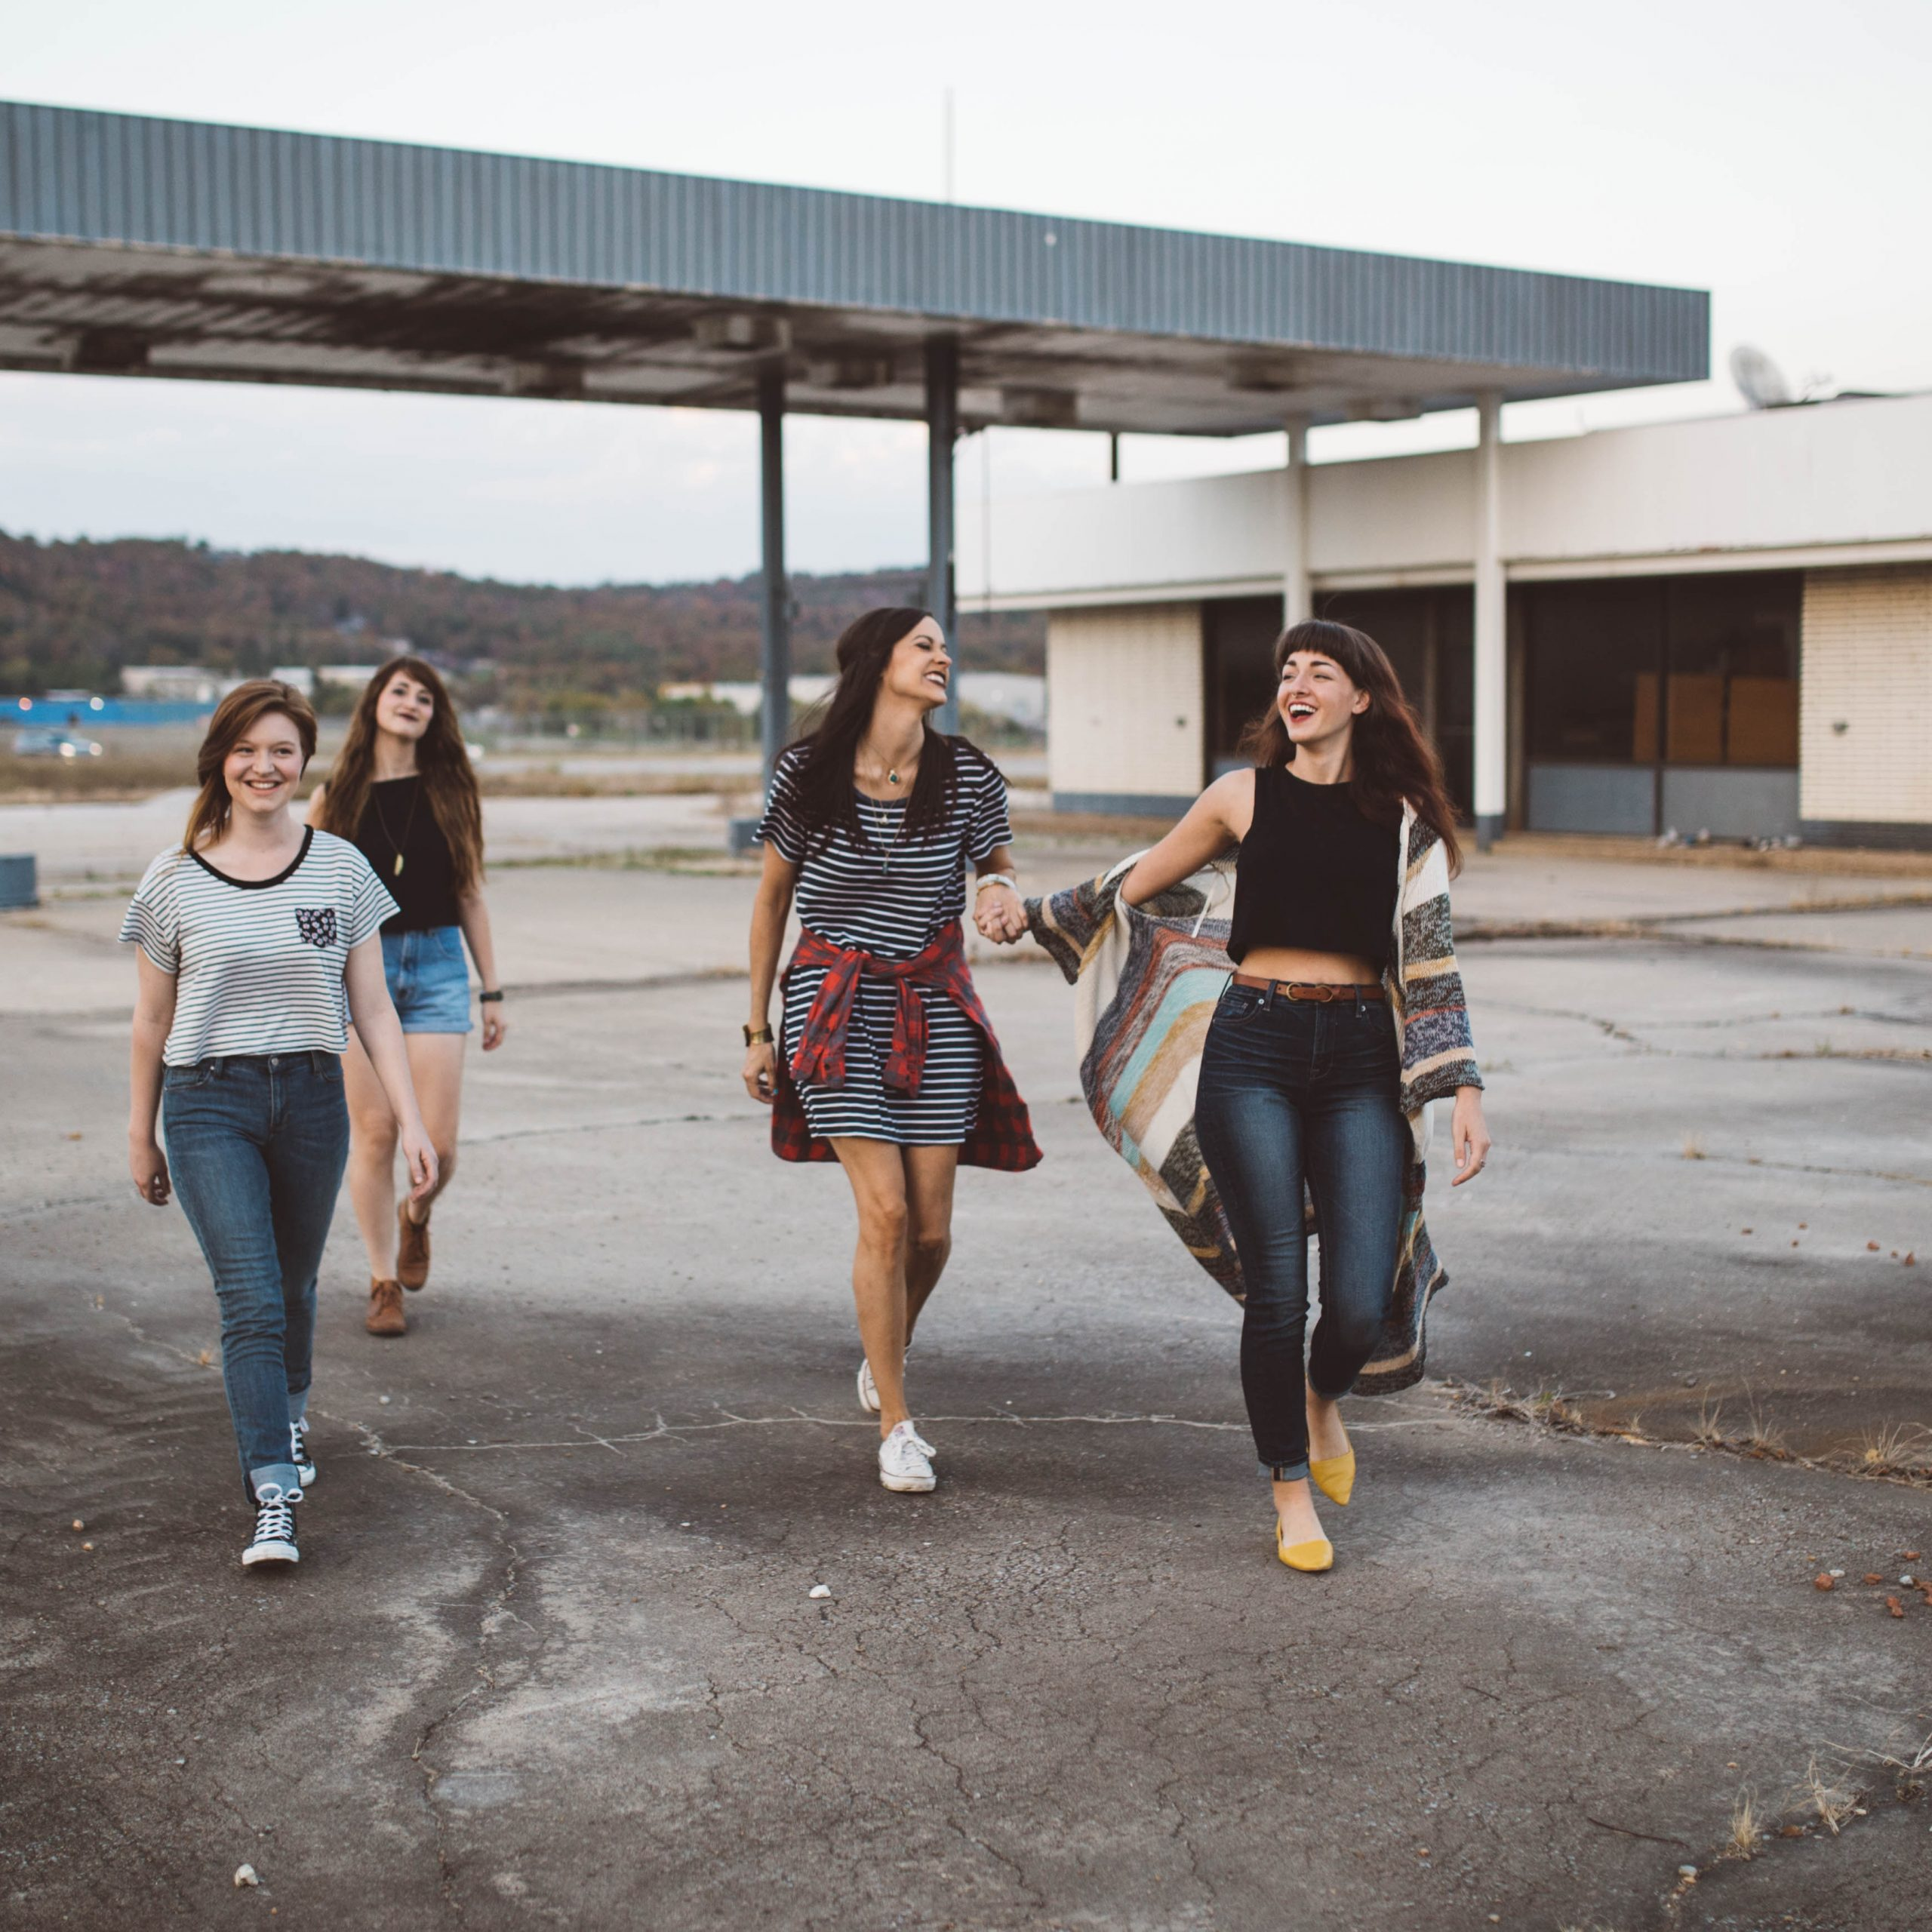 four girls walking near warehouse during daytime